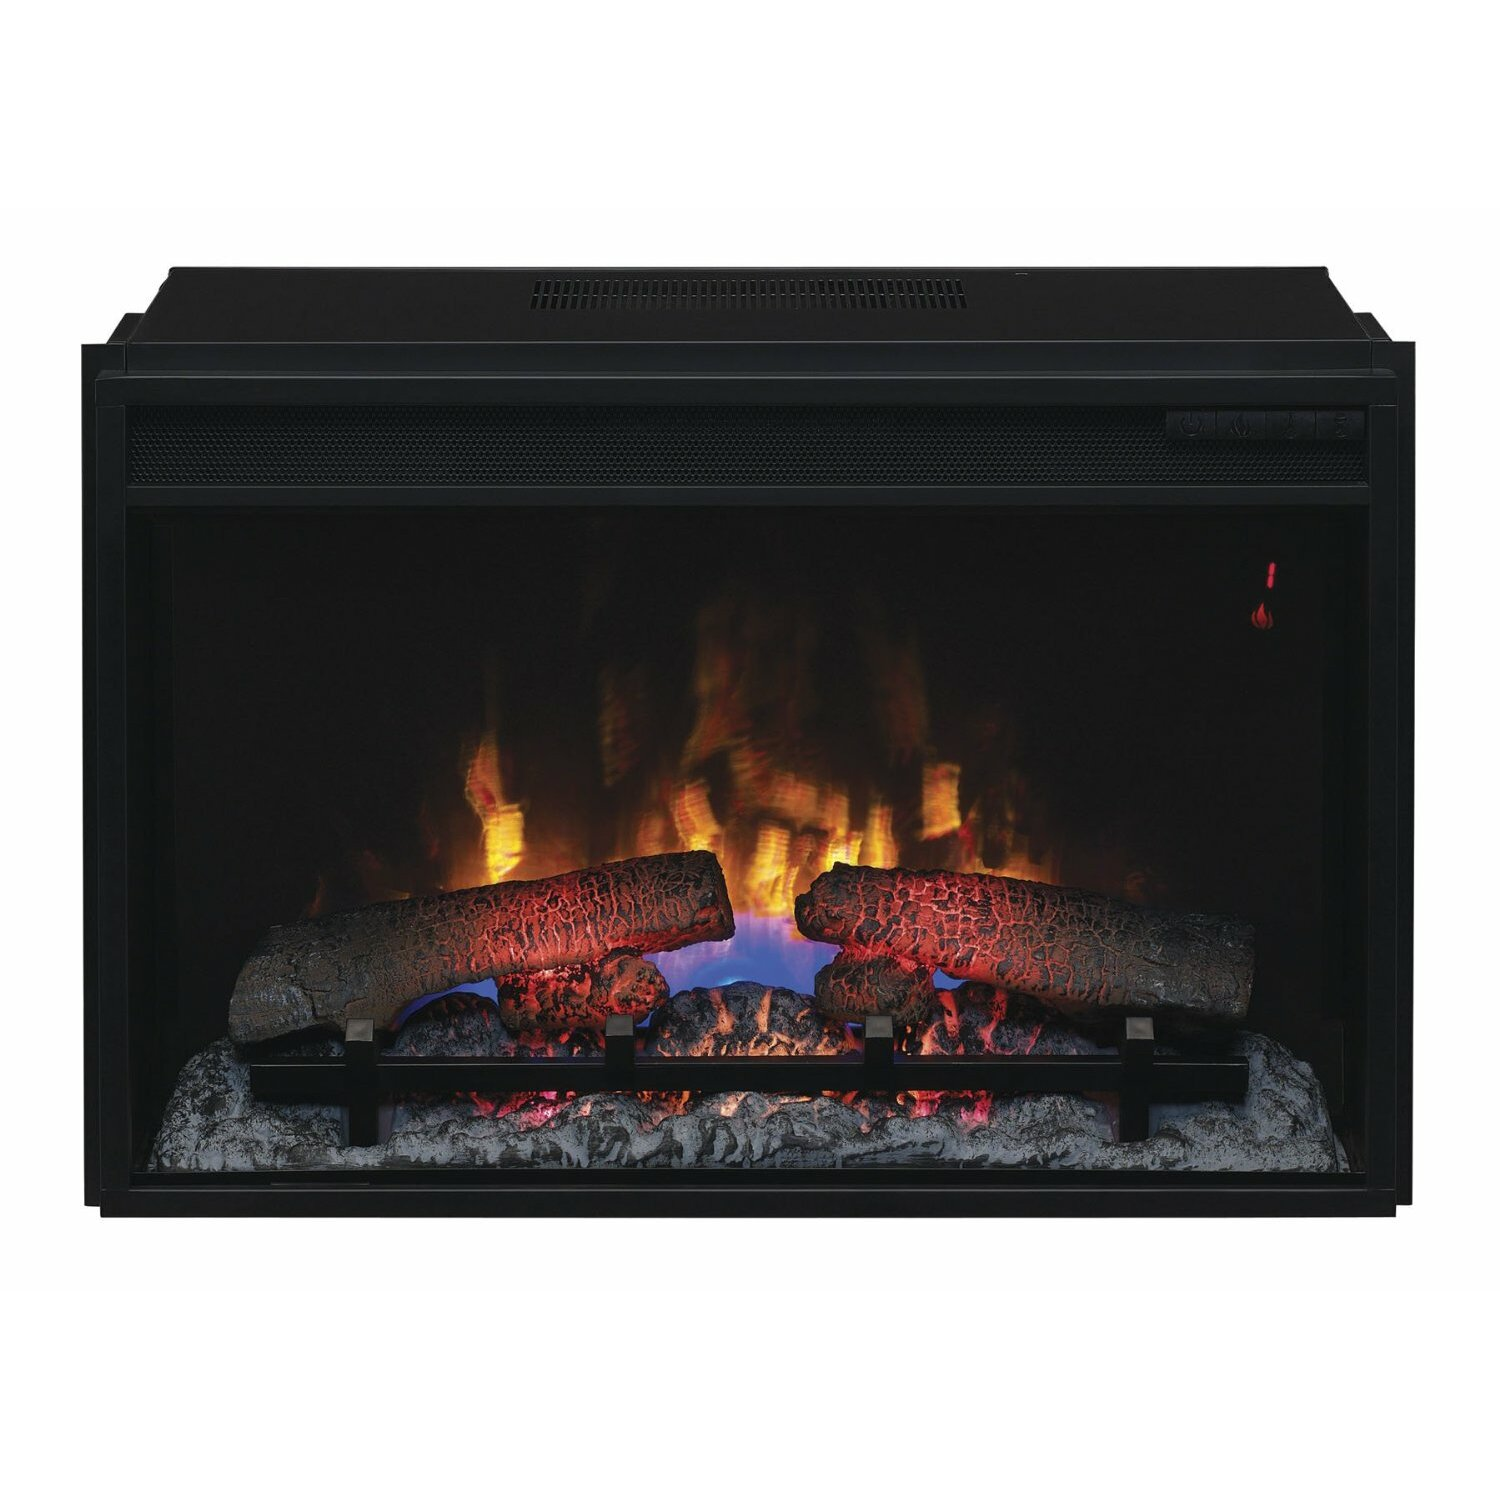 Classic Flame 26 Infrared Electric Fireplace Insert Reviews Wayfair